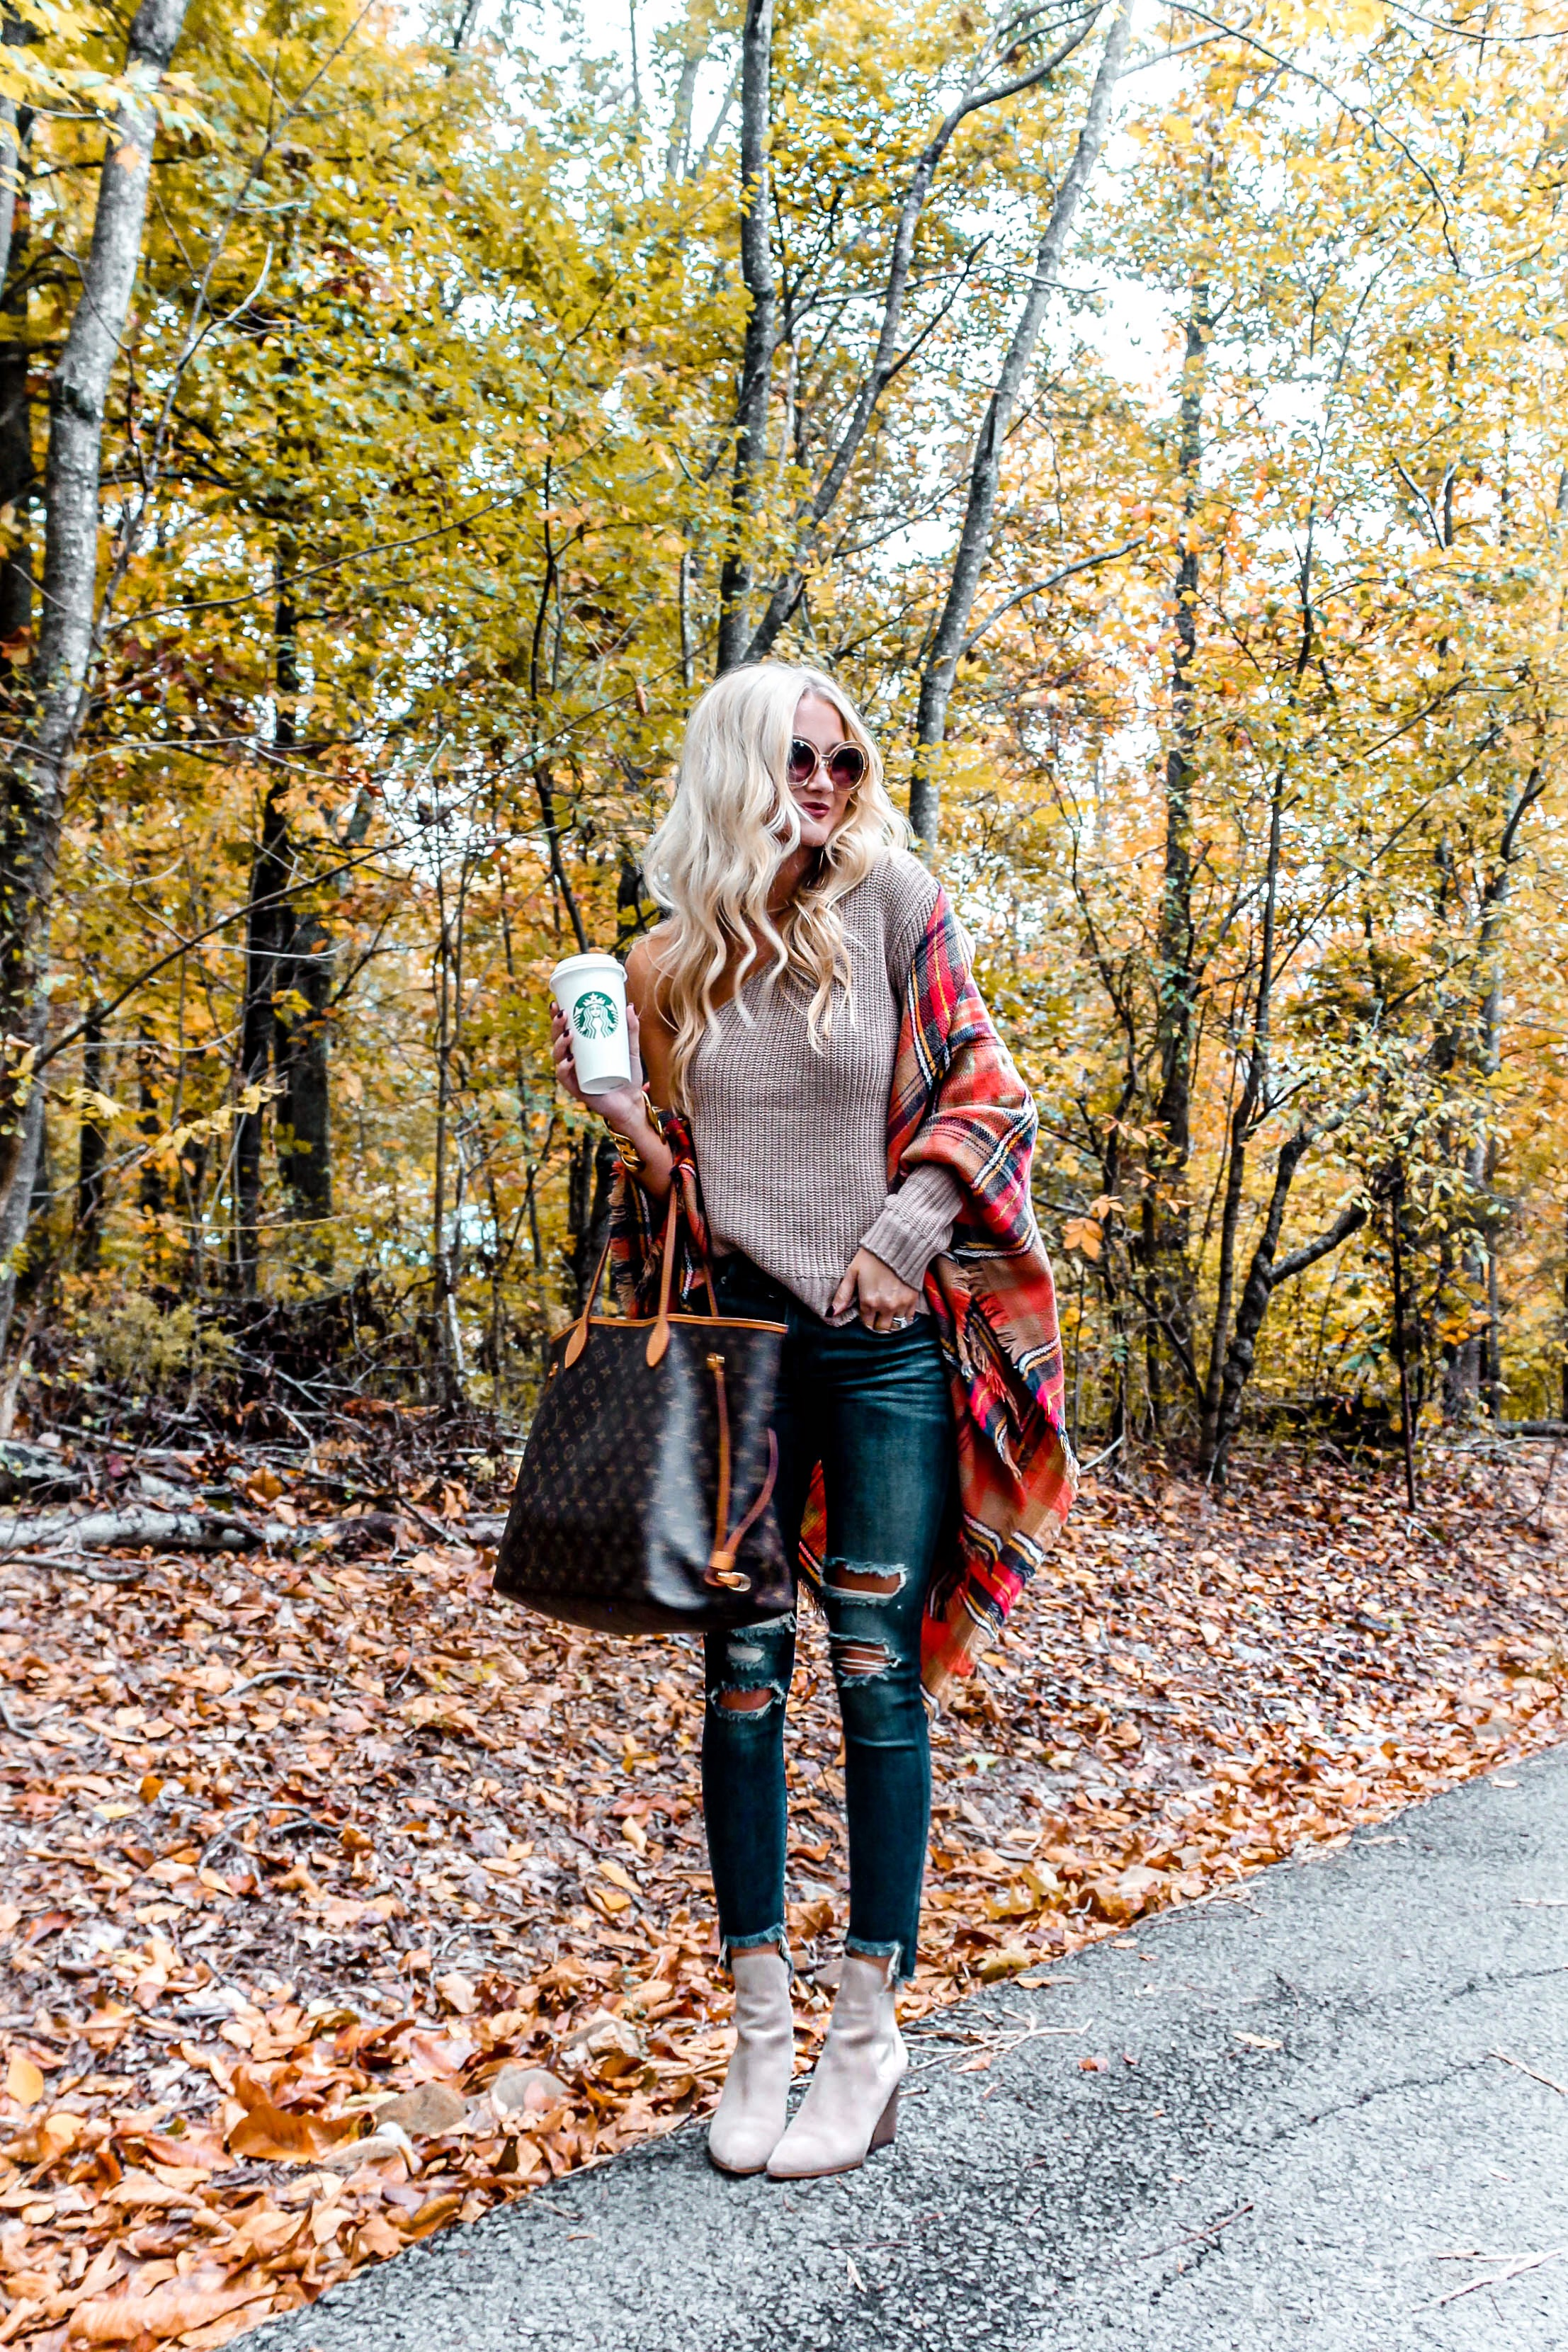 Affordable, Fall Outfit + Current Makeup Routine | love 'n' labels www.lovenlabels.com